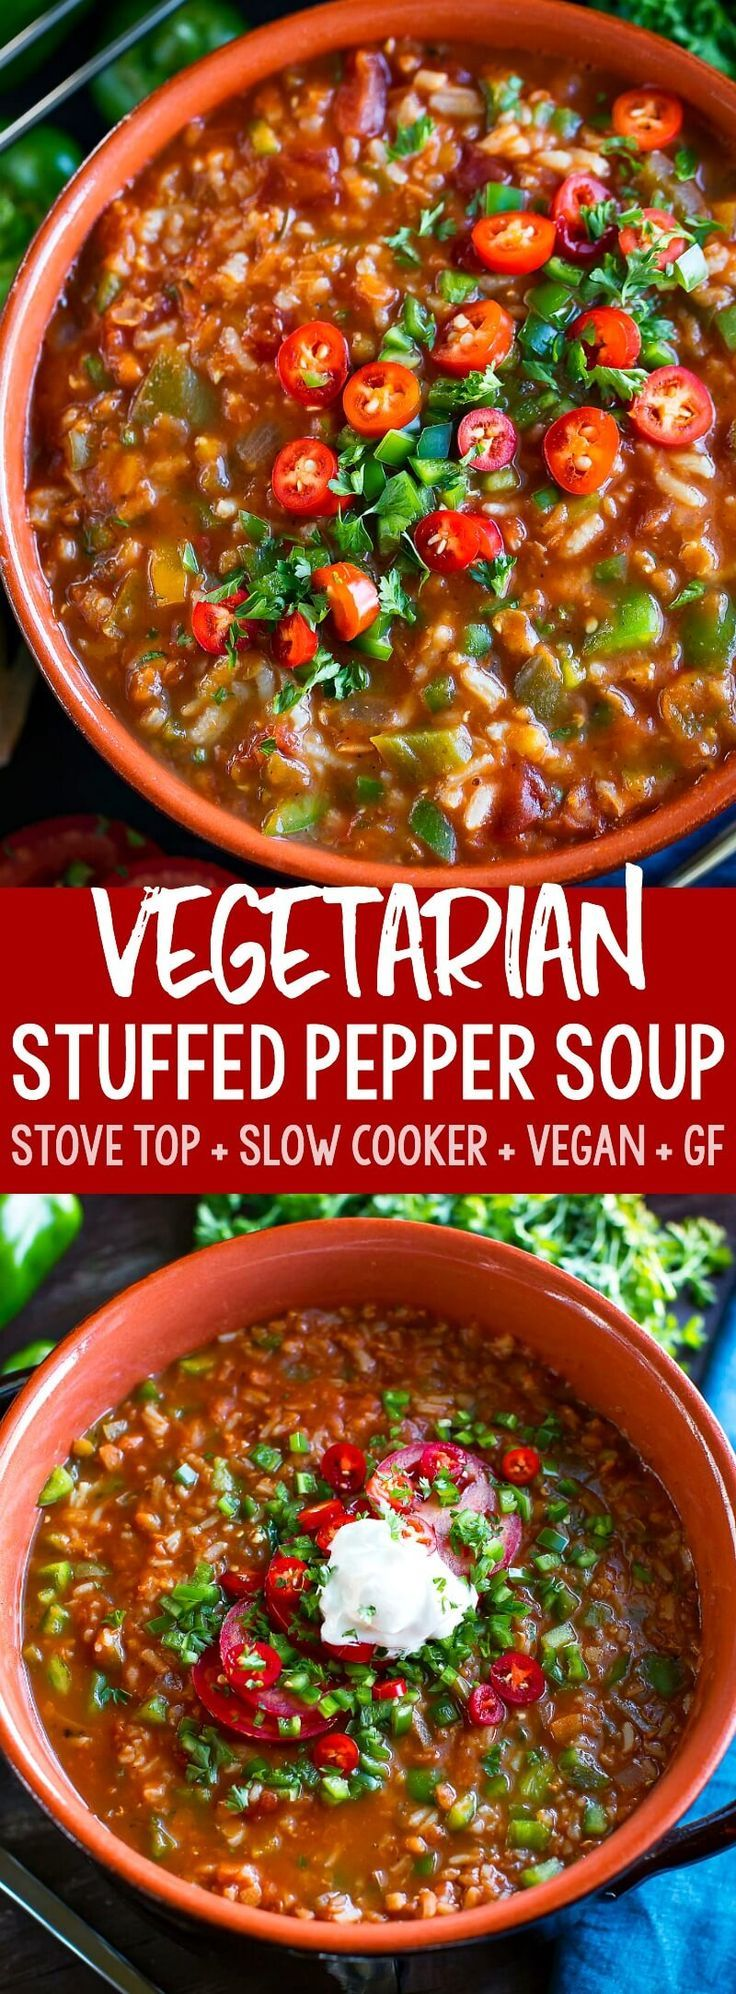 Vegetarian Stuffed Pepper Soup Stove Top and Slow Cooker This tasty Vegetarian Stuffed Pepper Soup has both stove top and slow cooker instructions Full of flavor and load...